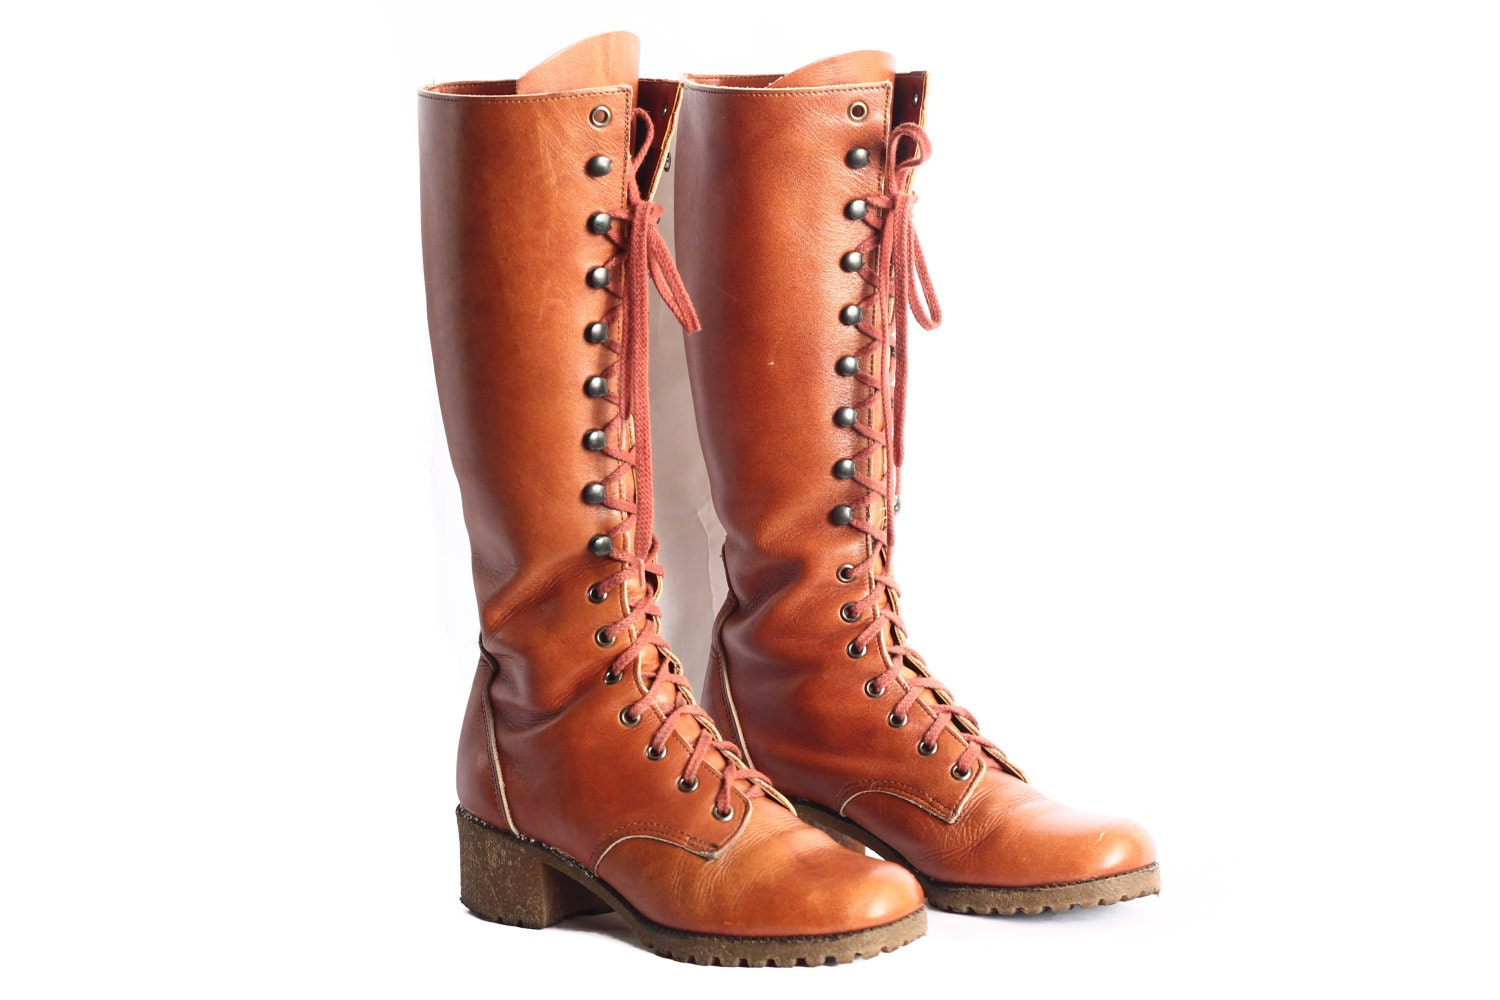 brown lace up combat boots in womens 9